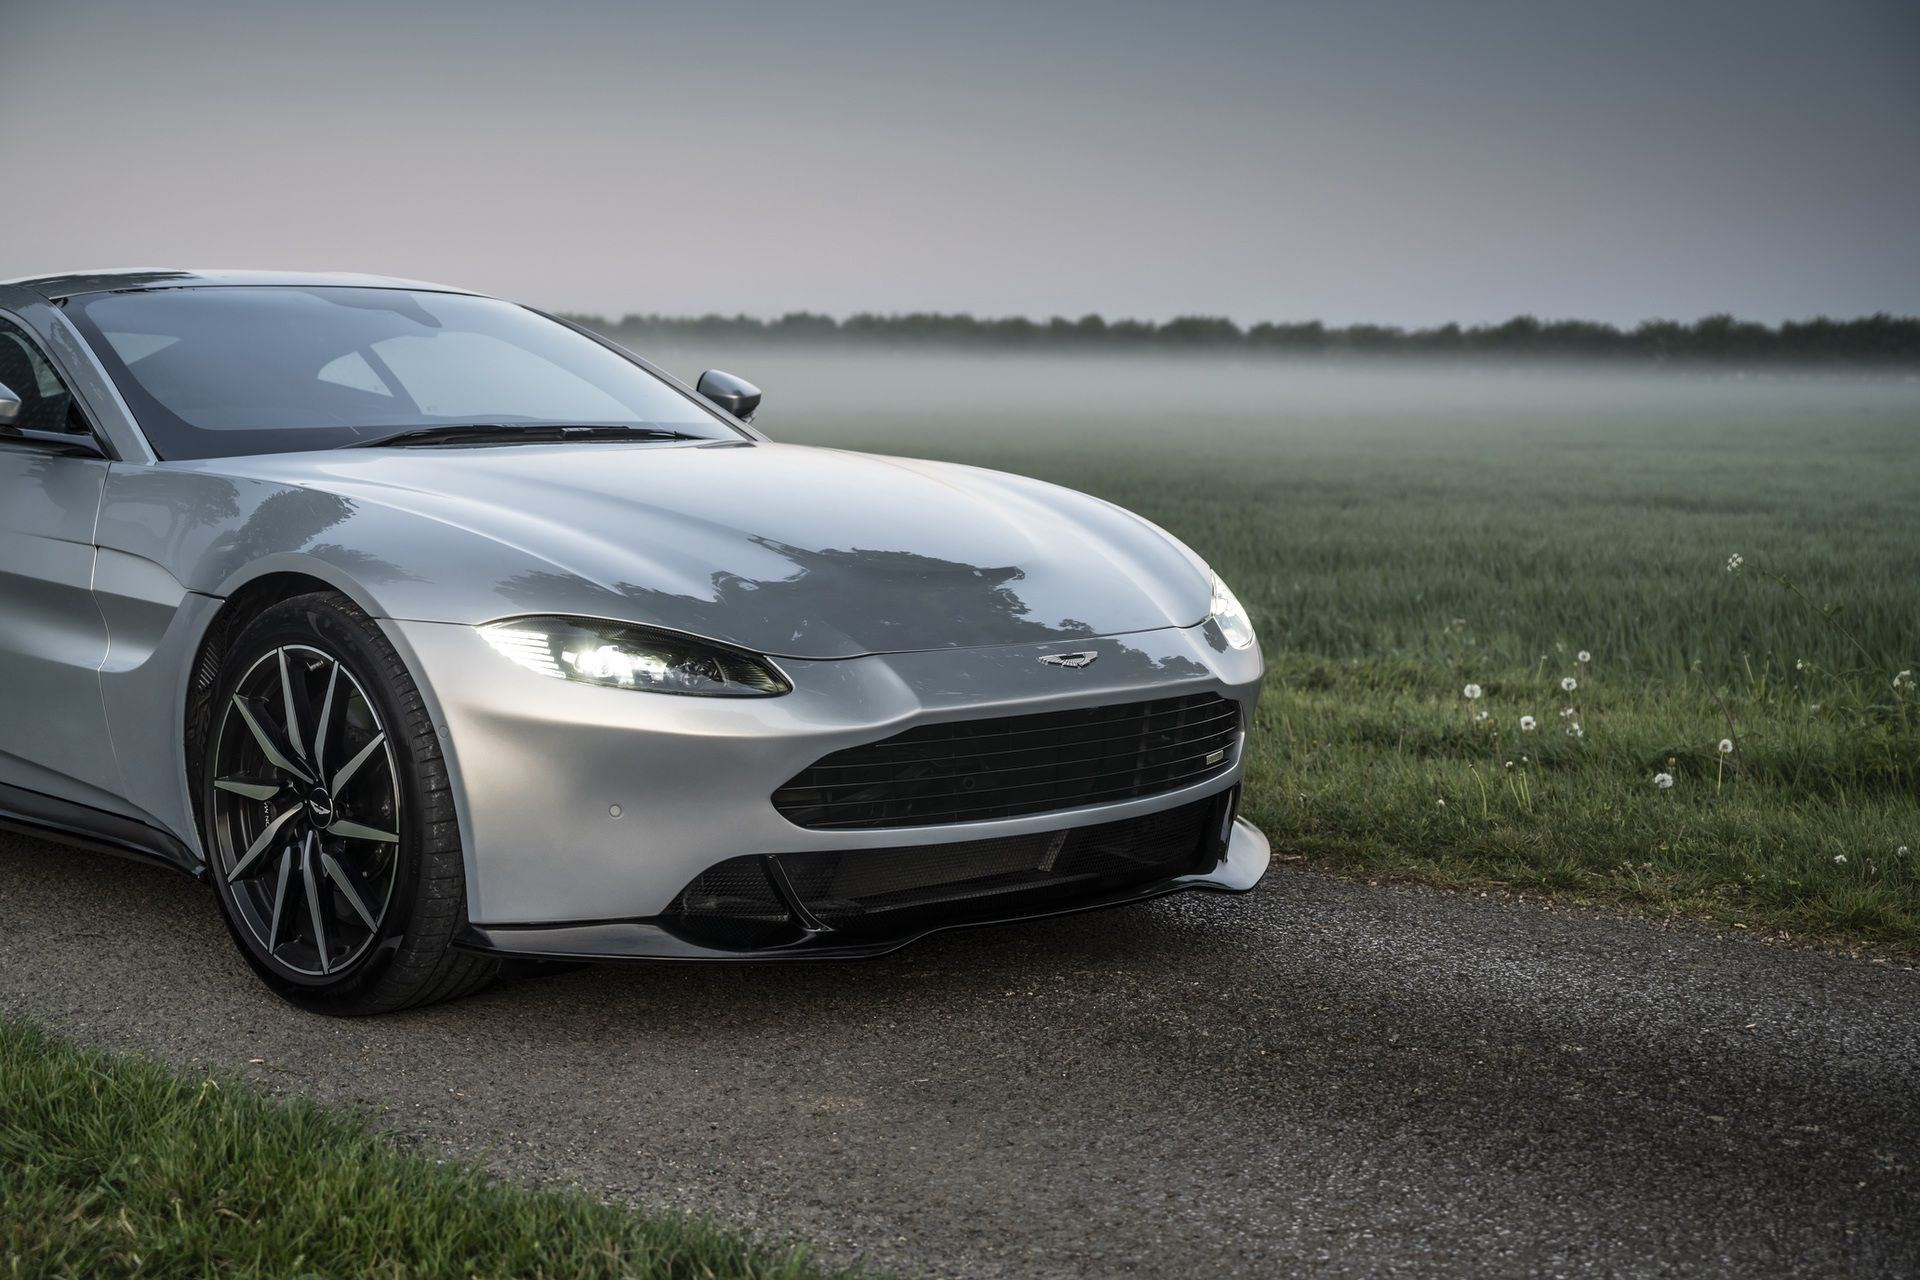 3.-Revenant-Automotive-Aston-Martin-Vantage-bumper-close-up